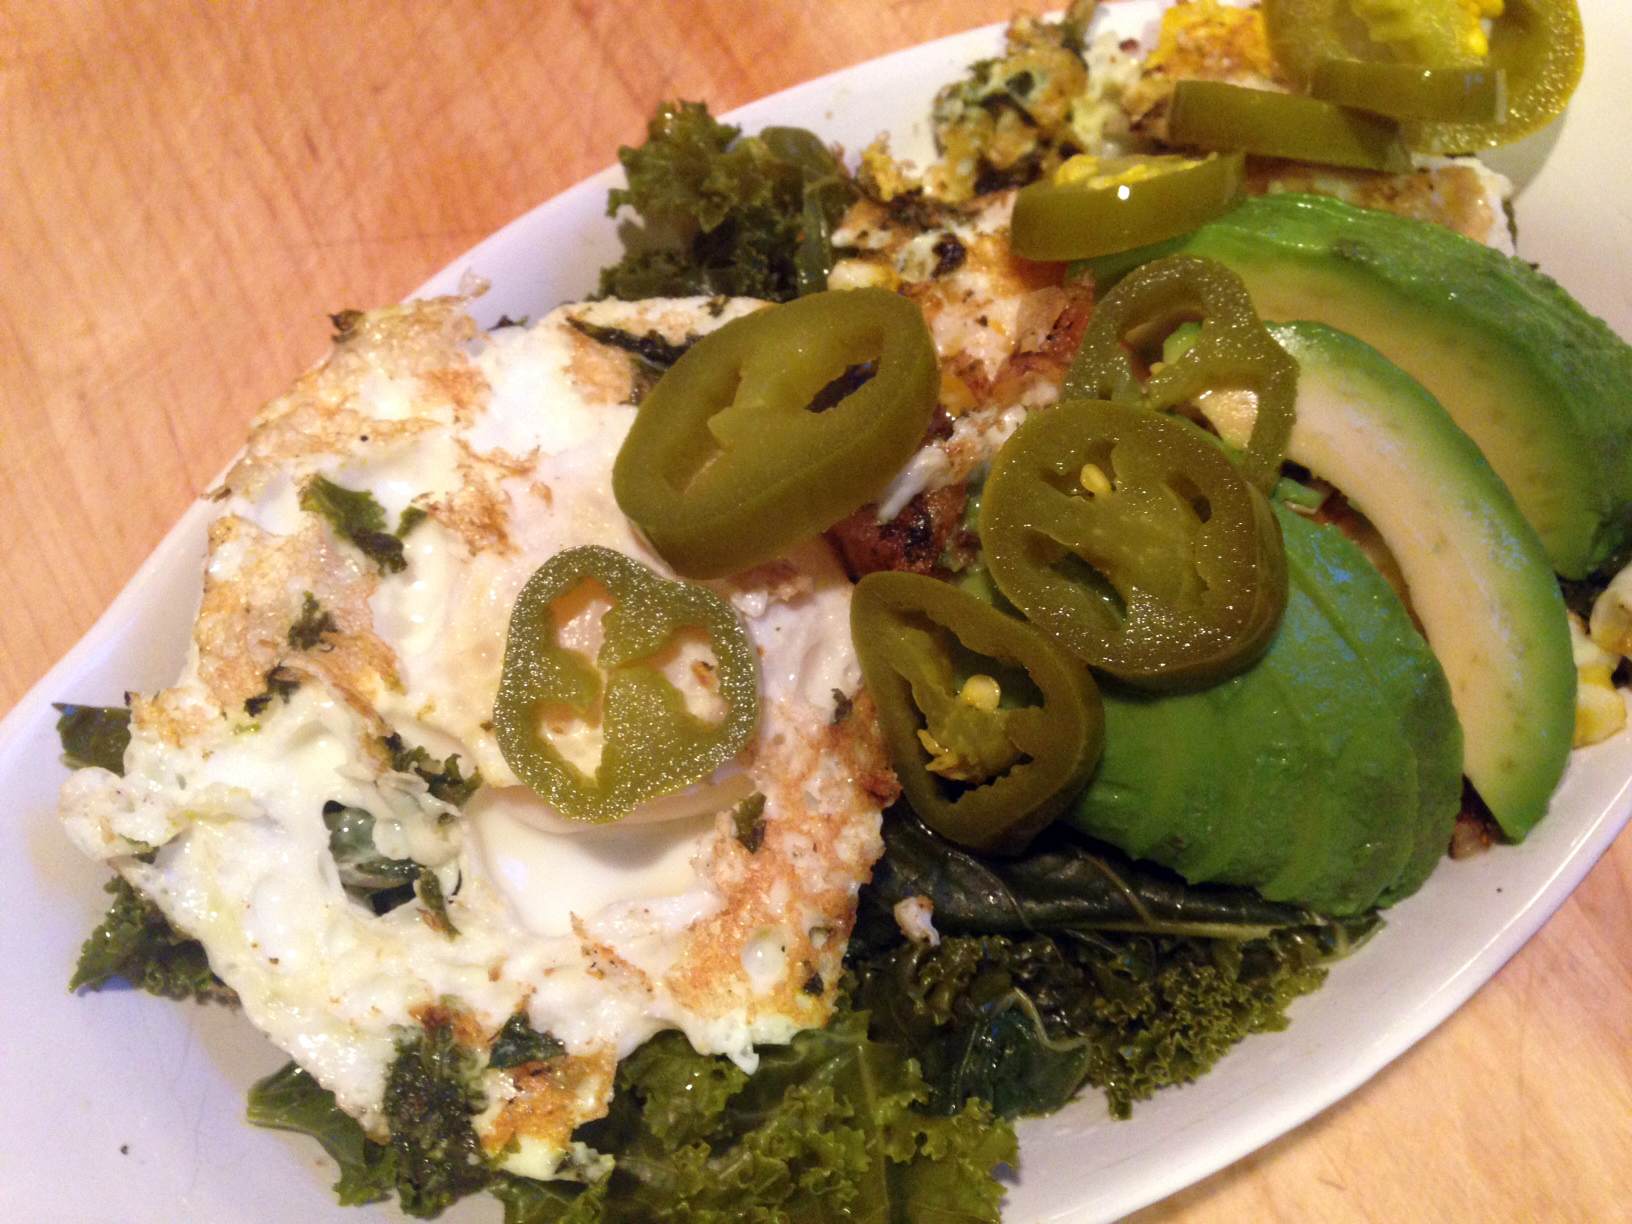 Greens and eggs.